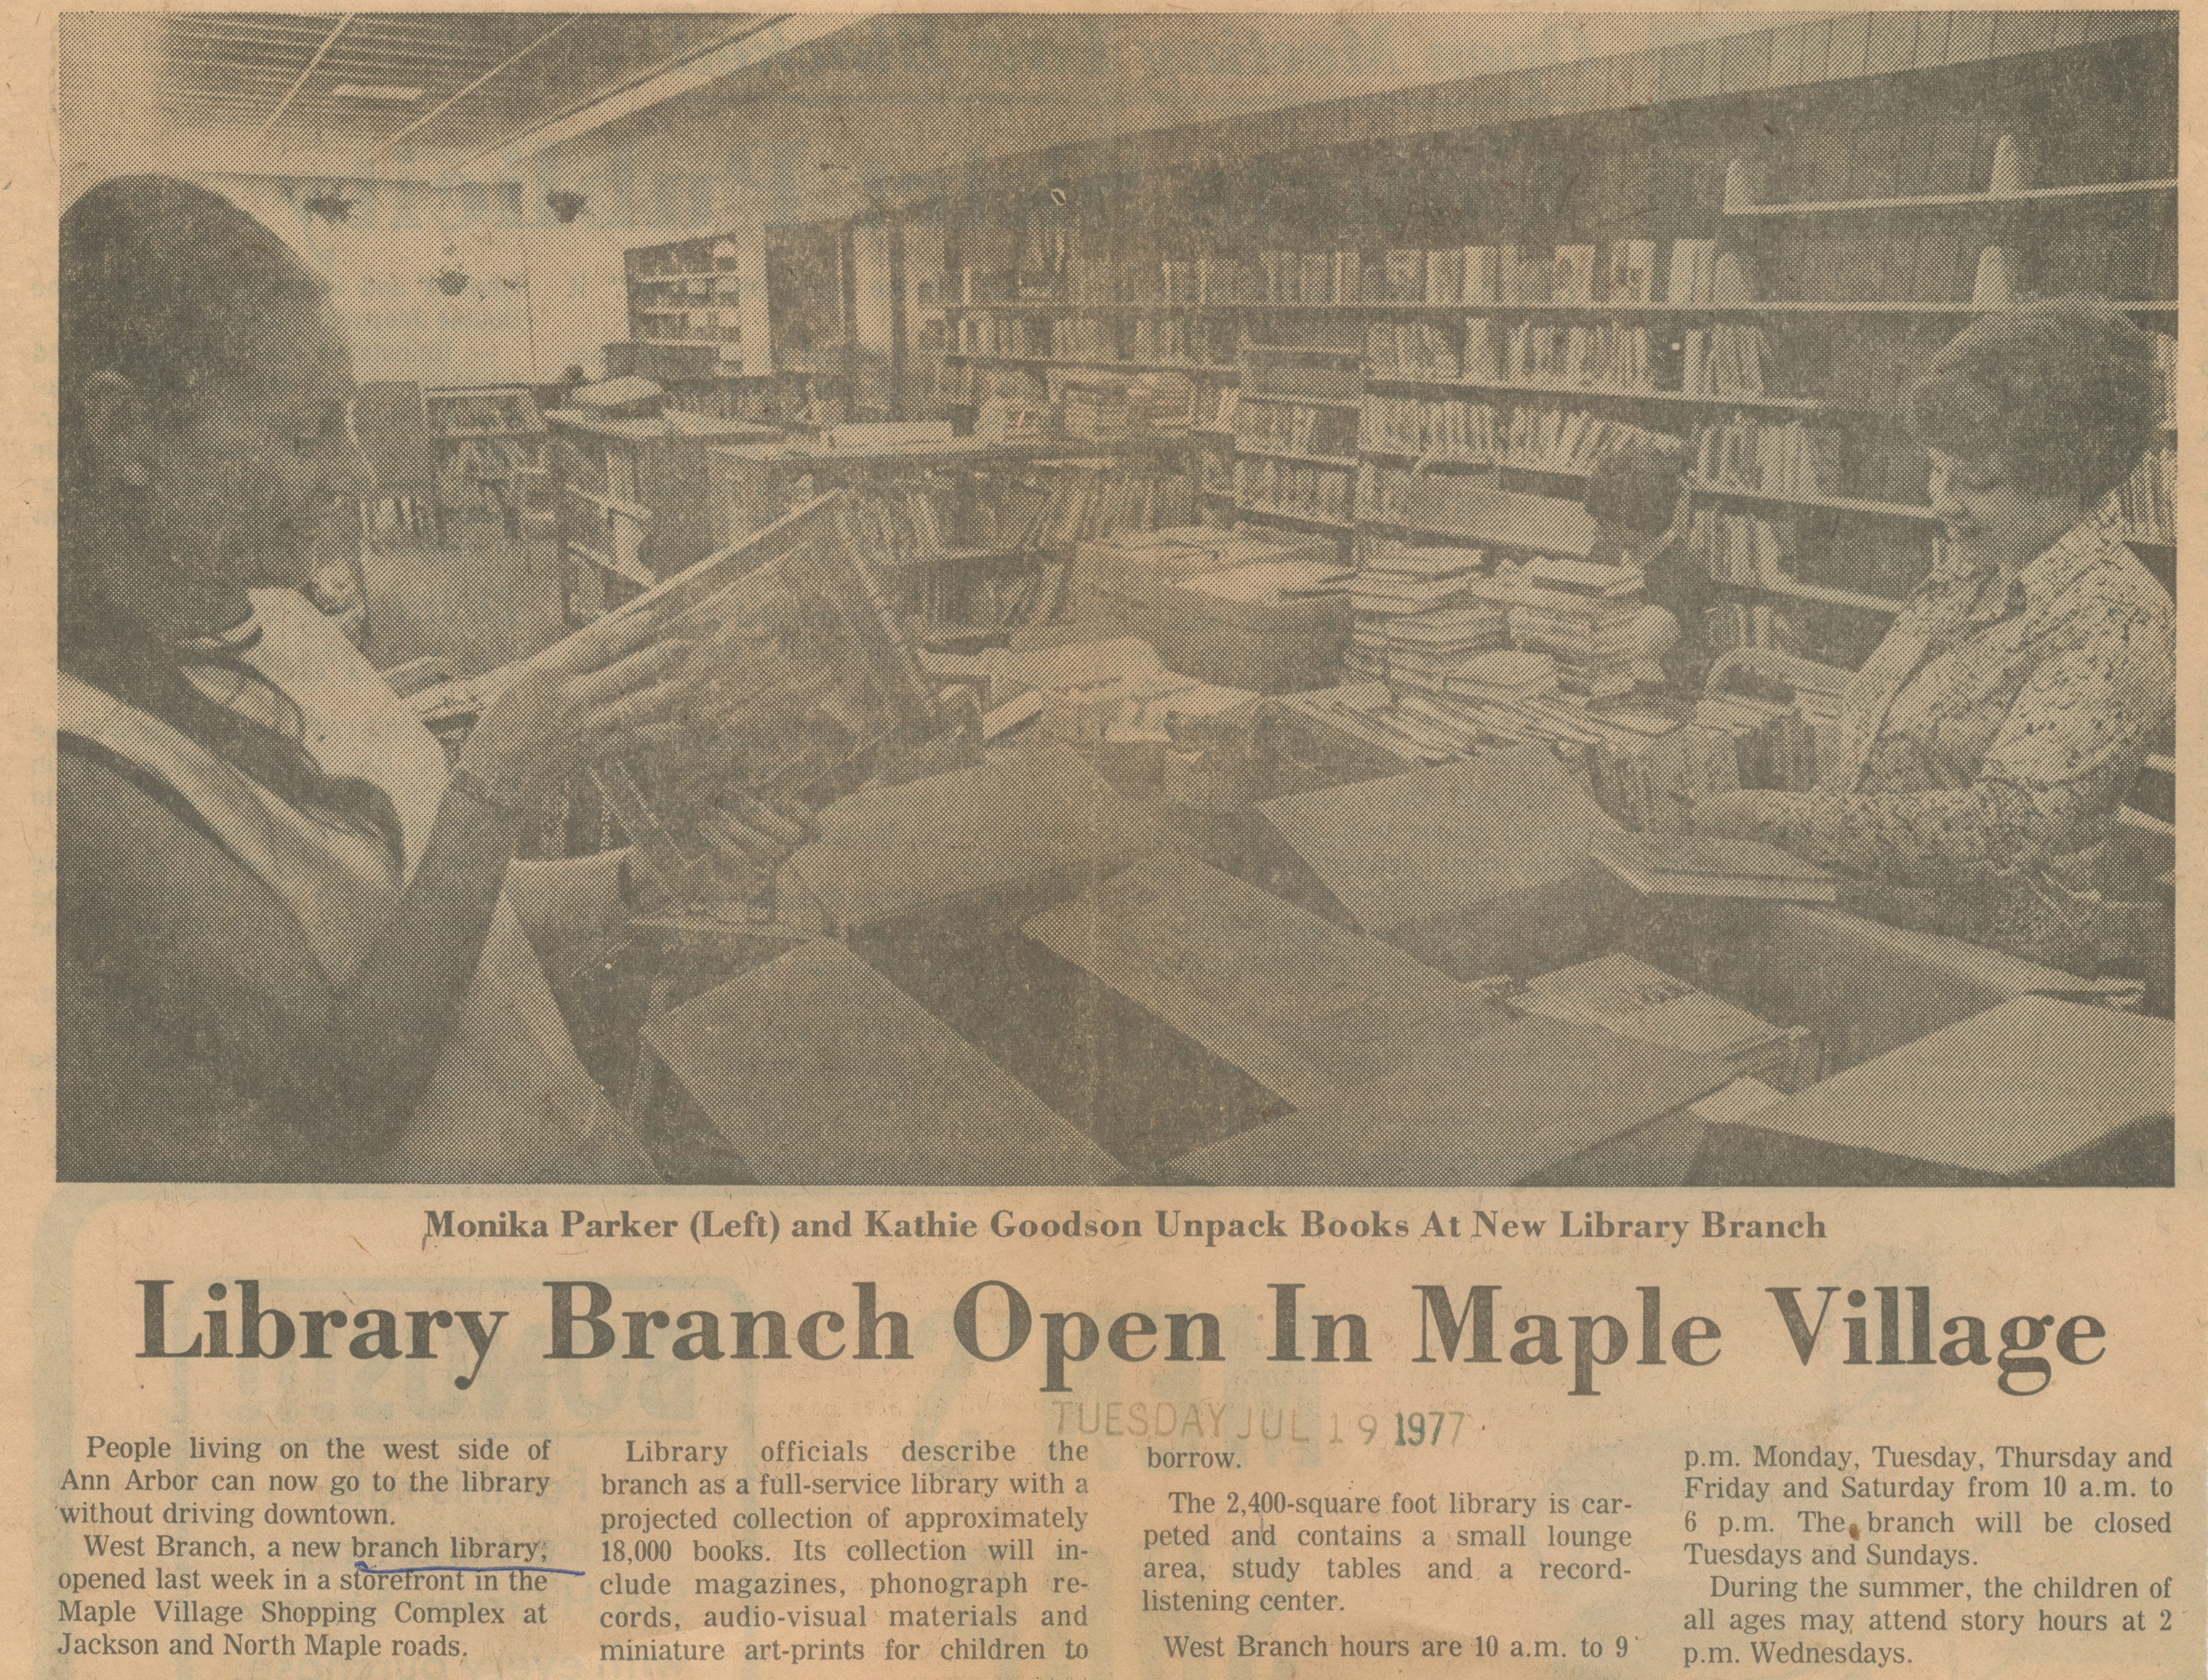 Library Branch Open In Maple Village image